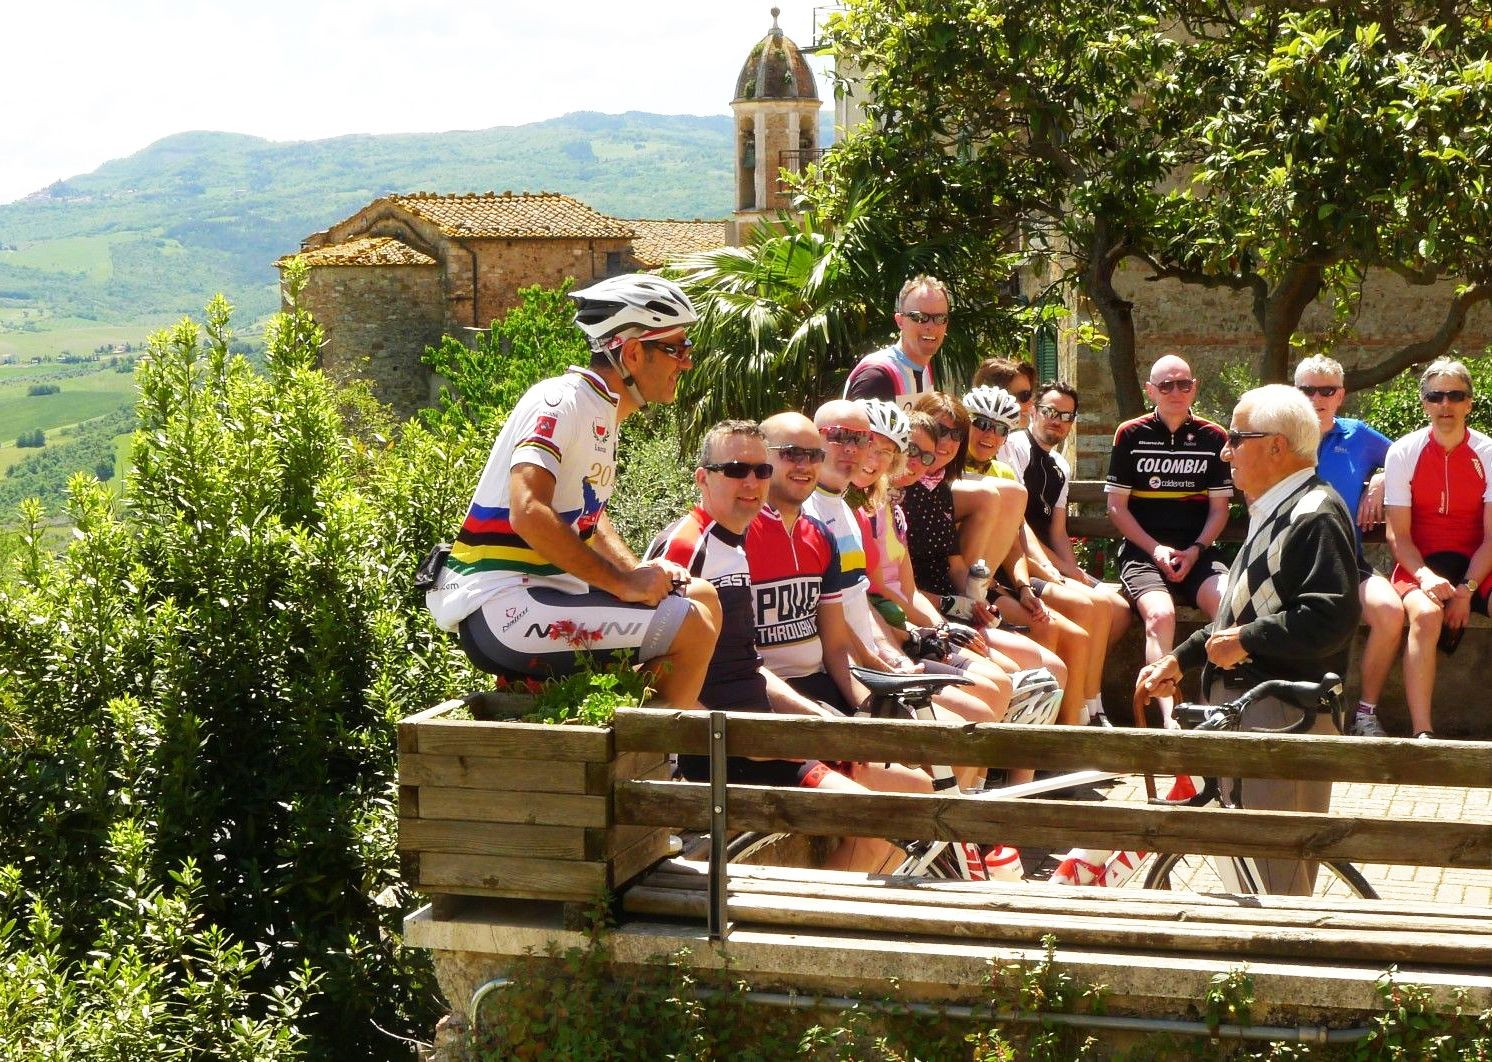 guided-group-cycling-holiday-tuscany-italy.jpg - Italy - Tuscany Tourer - Guided Road Cycling Holiday - Road Cycling